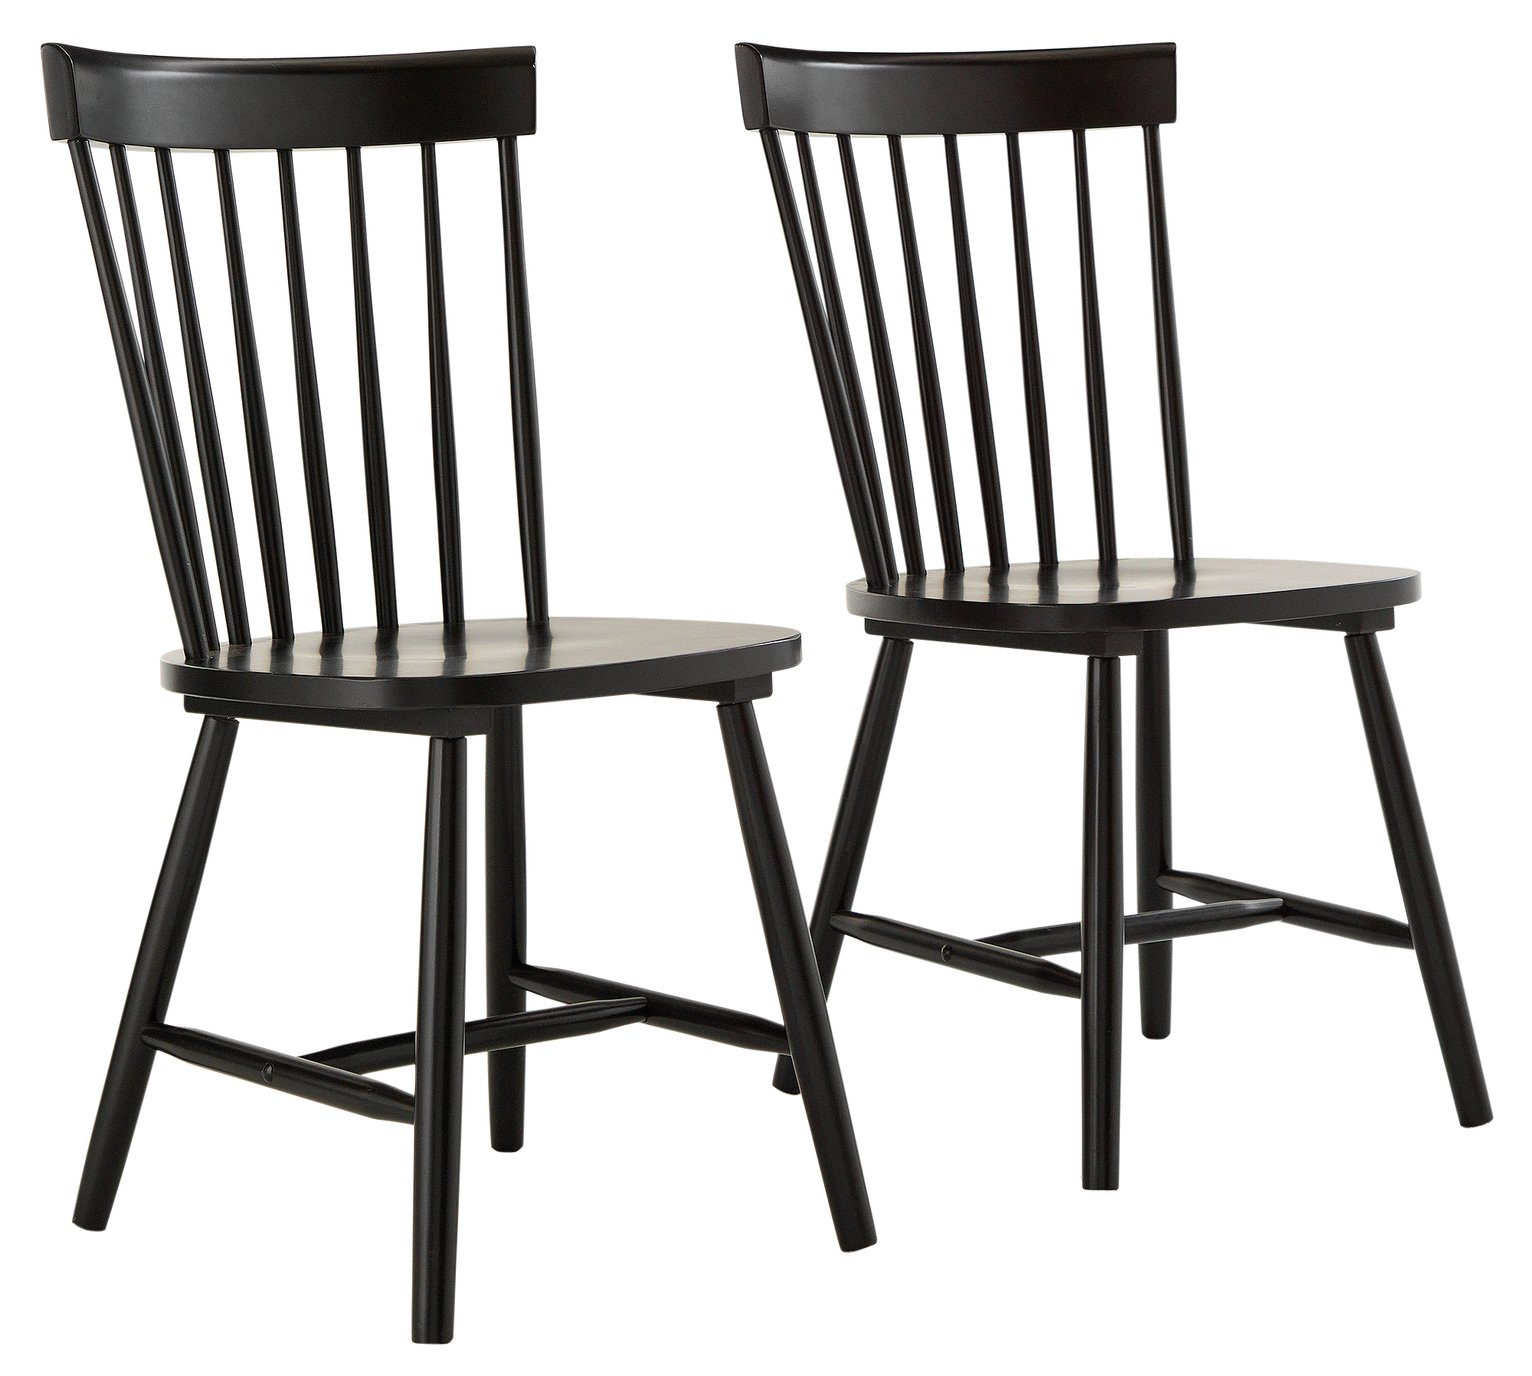 wooden kitchen chairs argos ngt fishing chair sale on hygena luna pair of black dining